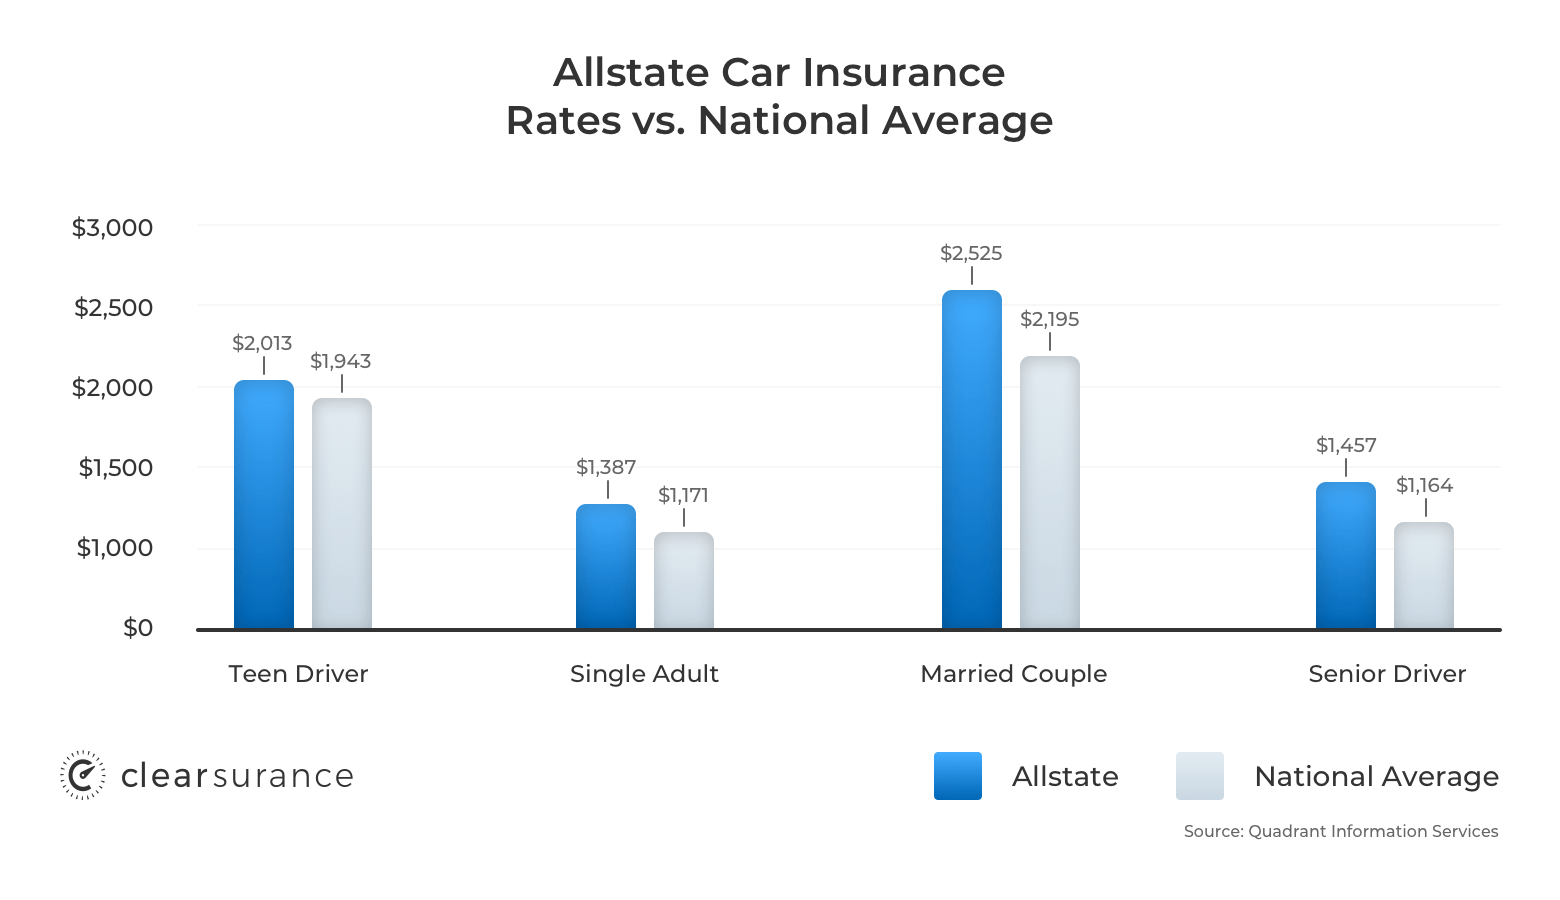 Allstate car insurance rates vs. the national average